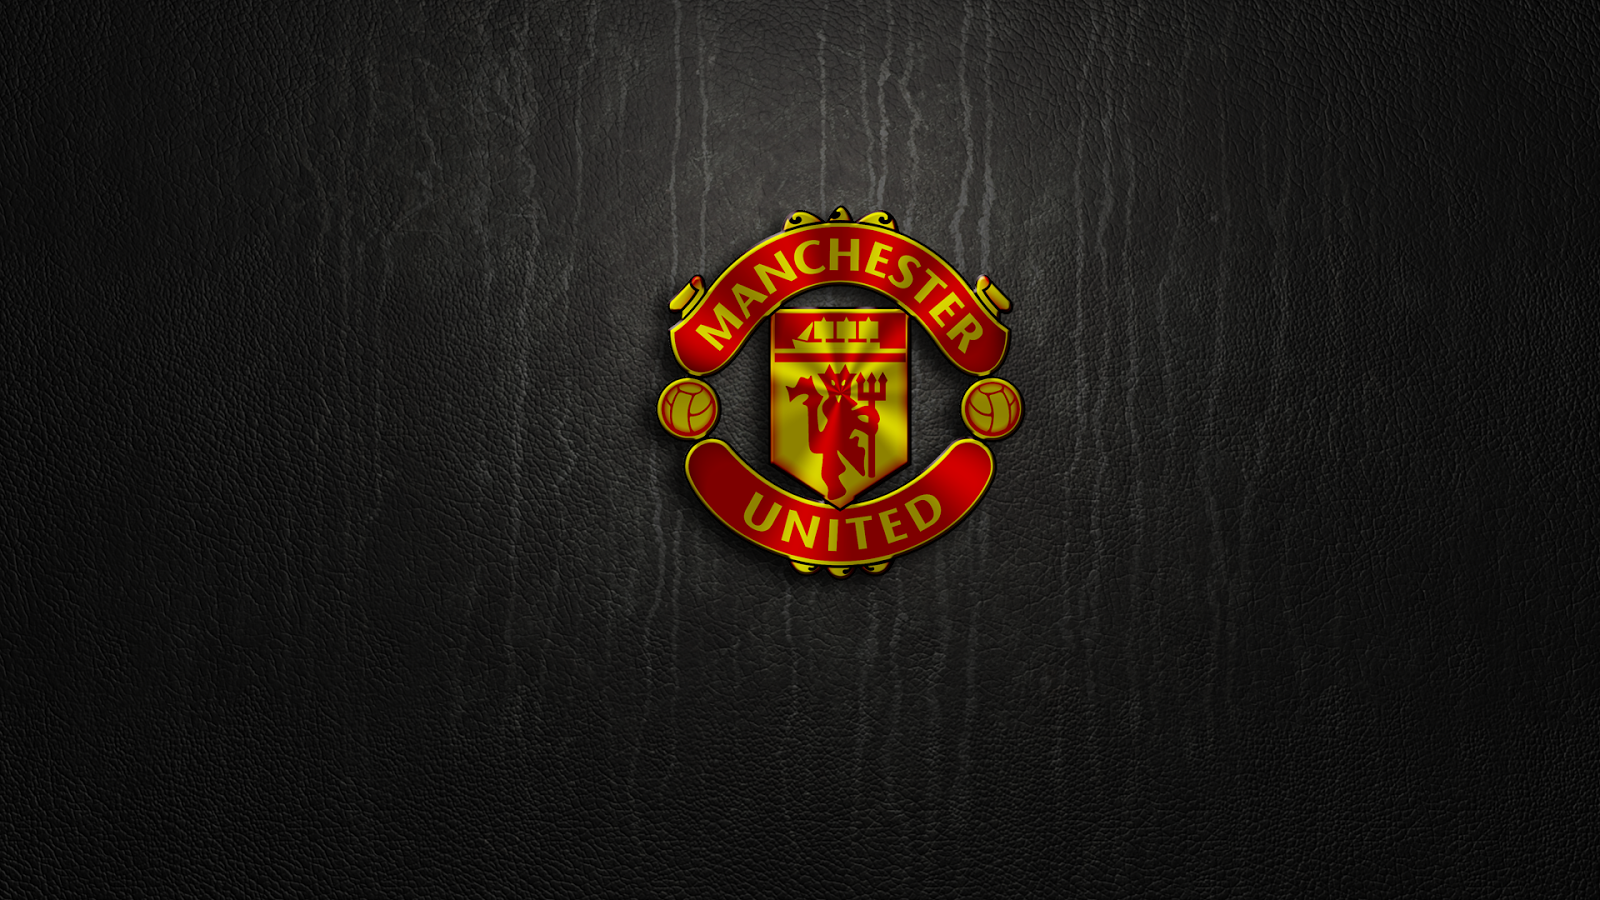 ... manchester united football club wallpaper ...